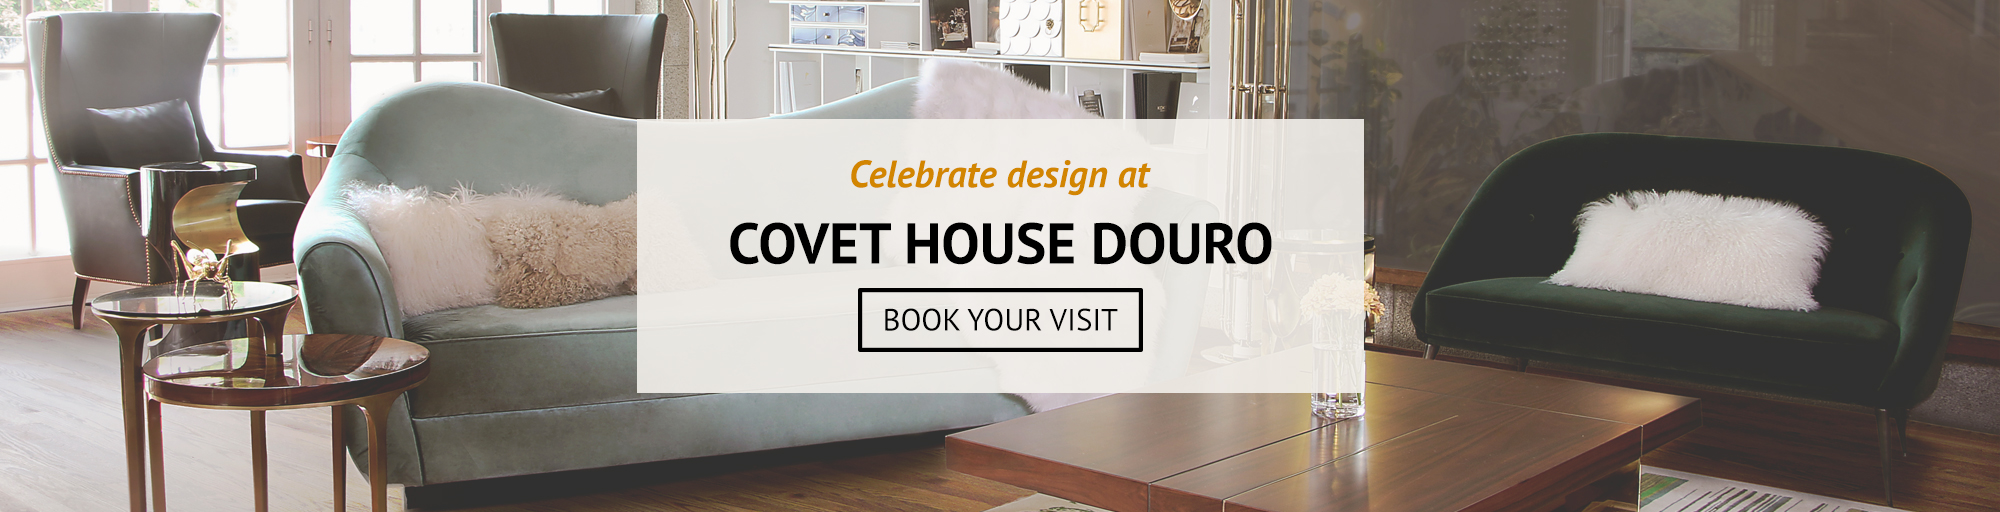 covet house: the international design project Covet House: The international design project  49191C53D9A9A813E59898F0667FBE1D85F069FE58BFE8D88B pimgpsh fullsize distr